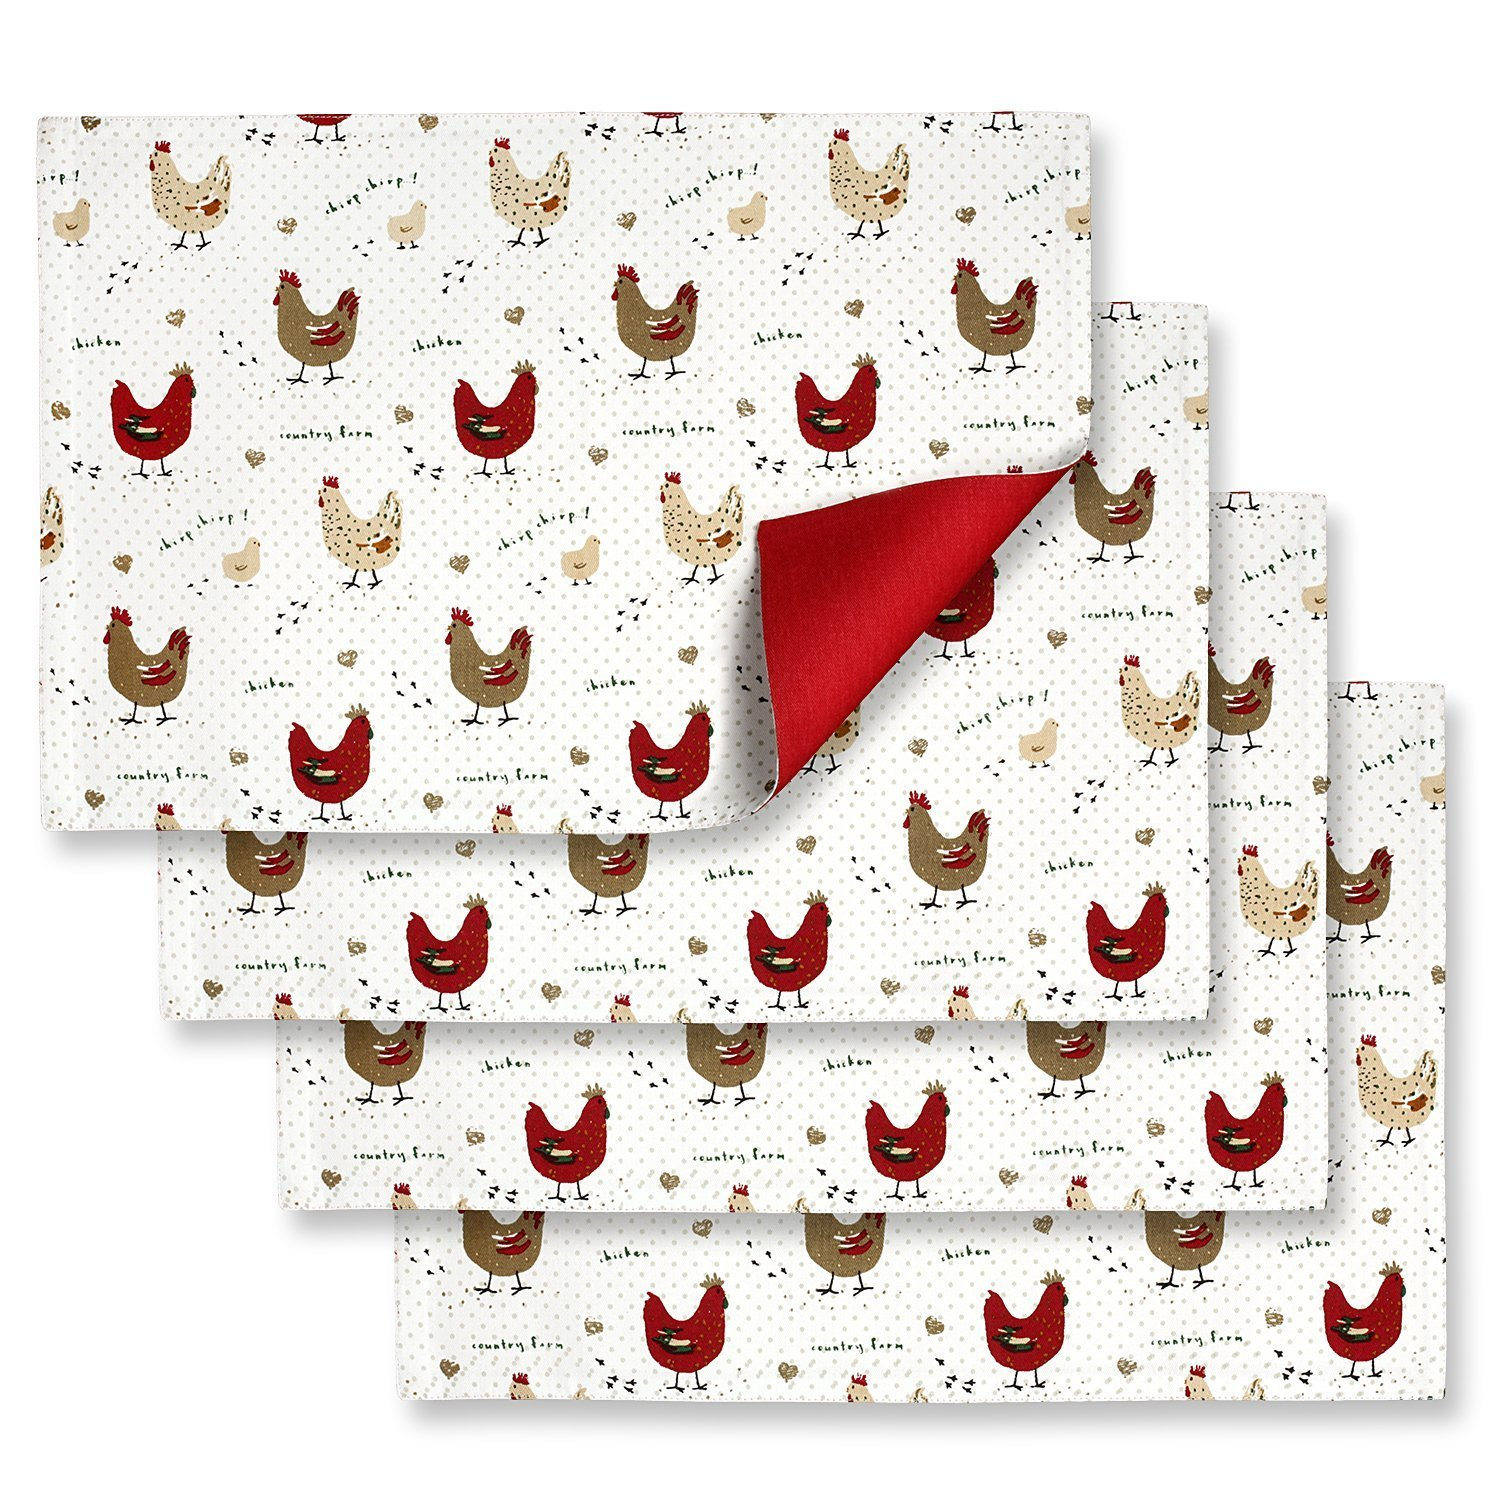 Cackleberry Home Farmhouse Chicken Placemats 13 x 19 Inches Cotton Reversible, Set of 4